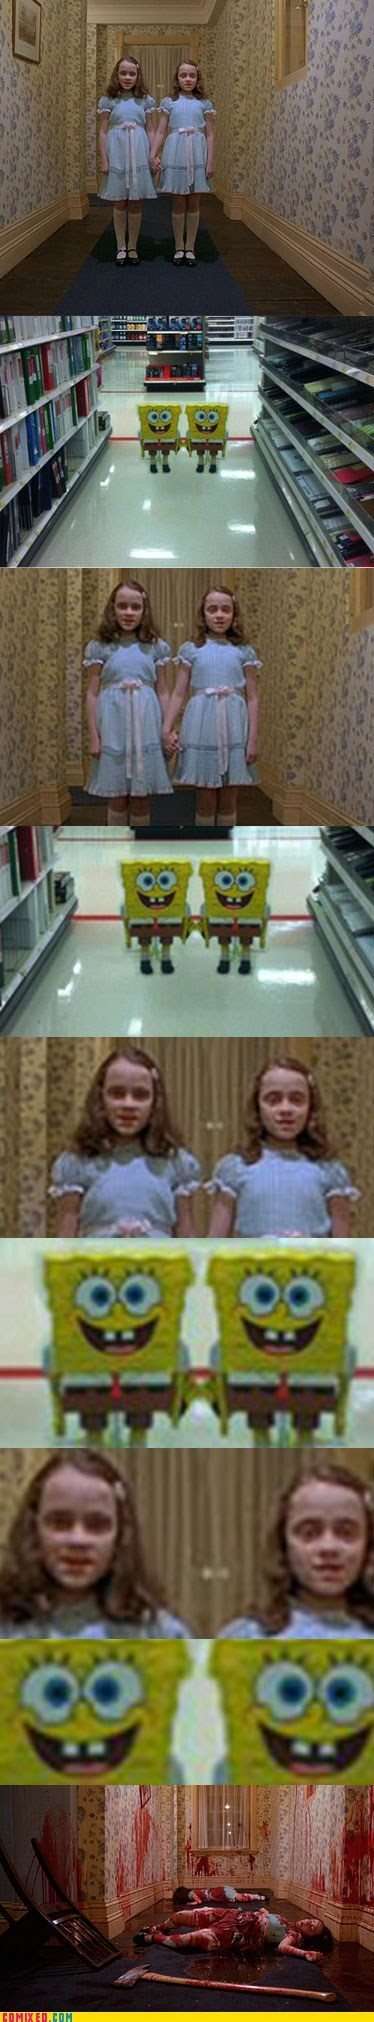 Movie,SpongeBob SquarePants,a challenger appears,twins,the shining